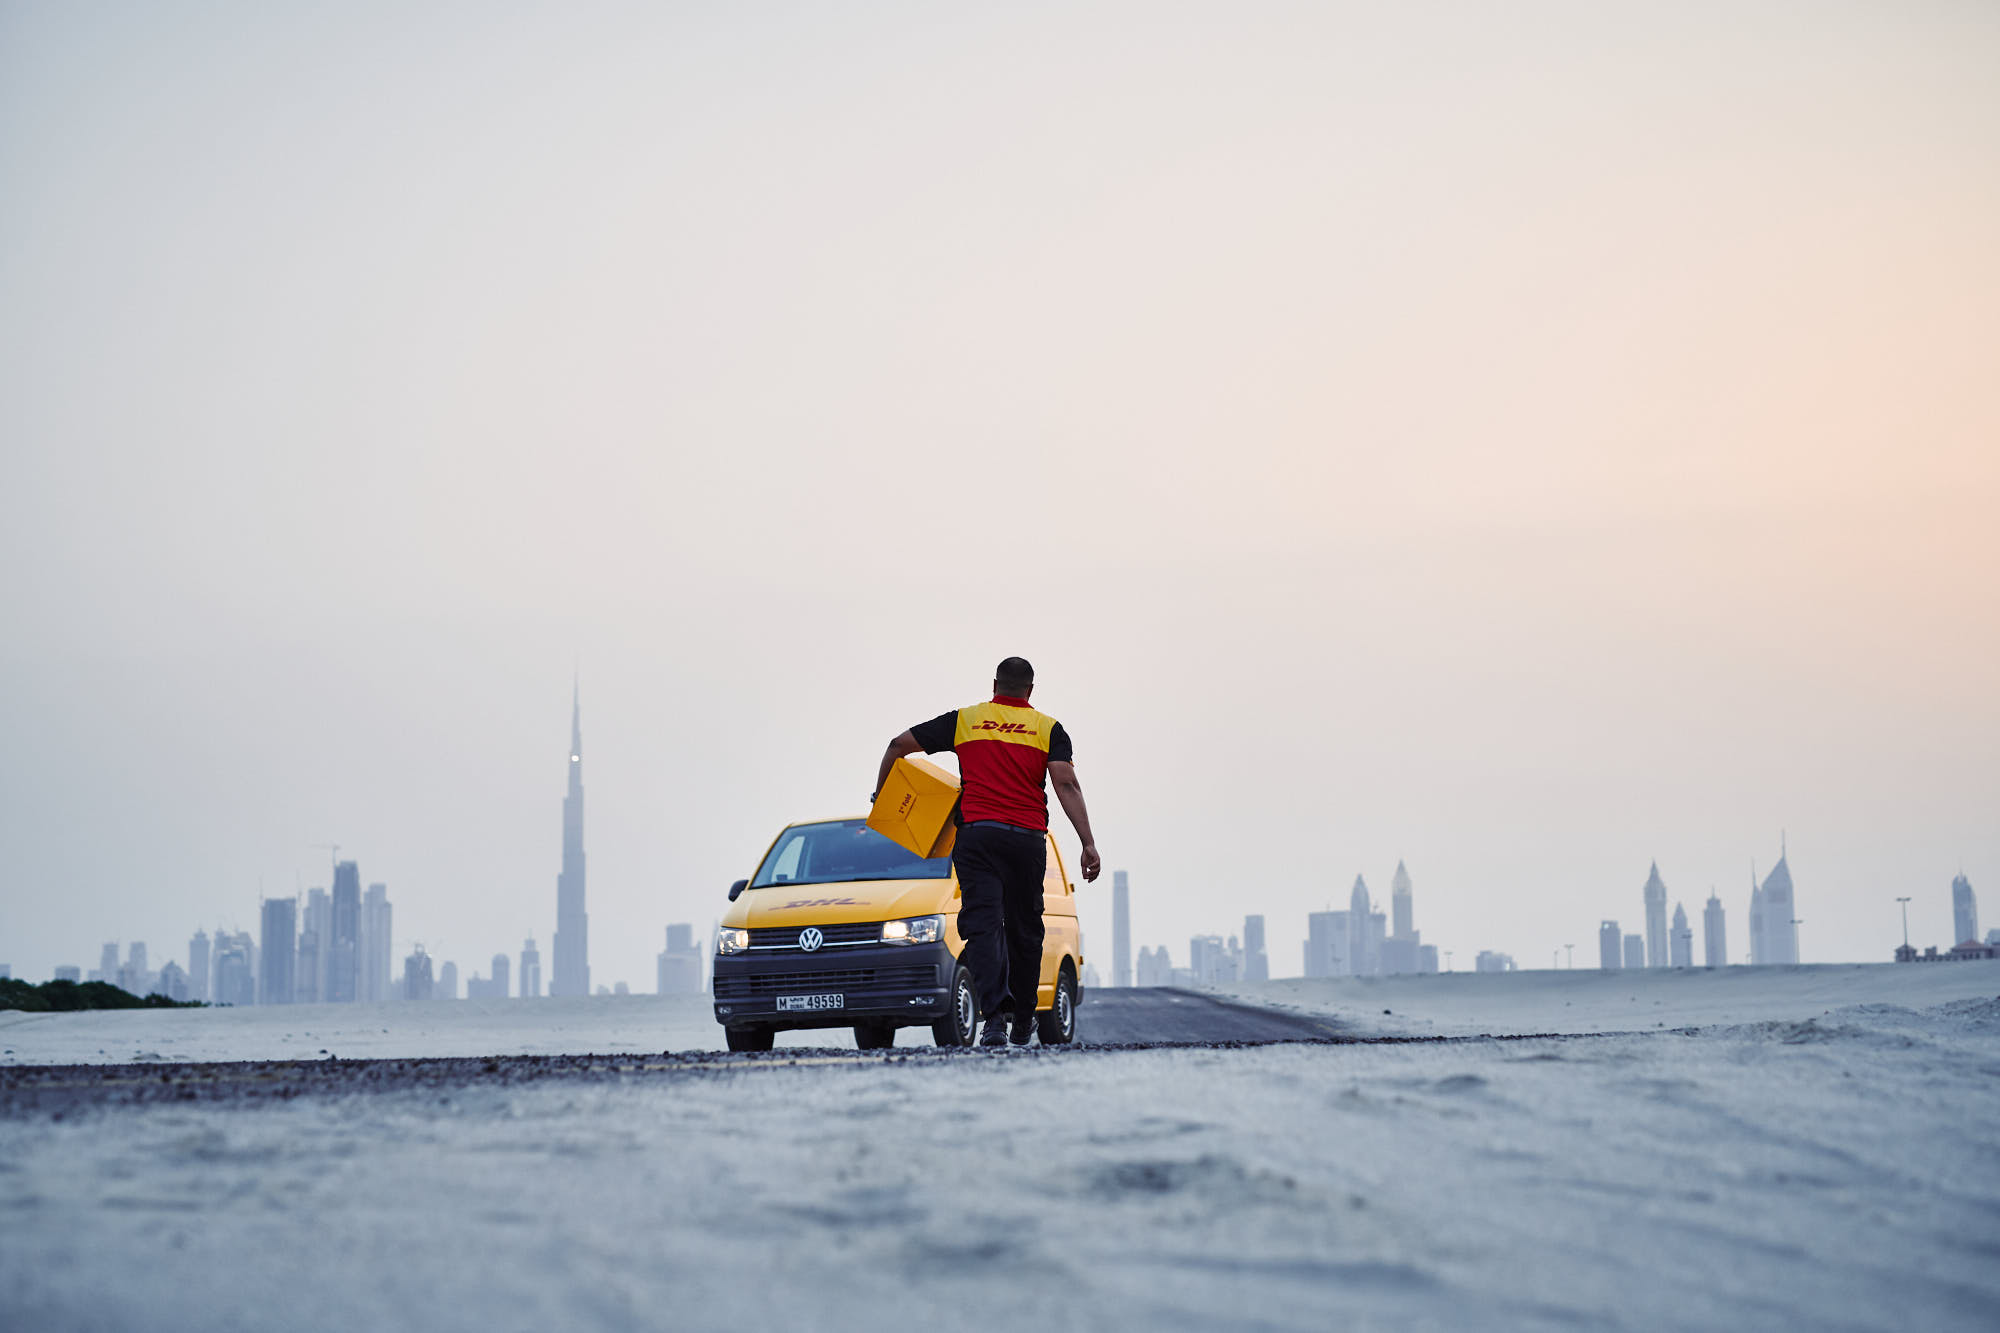 global campaign advertising photography shot in a cinematic reportage style for DHL by yorkshire and london award winning photographer matthewlloyd 4924.JPG